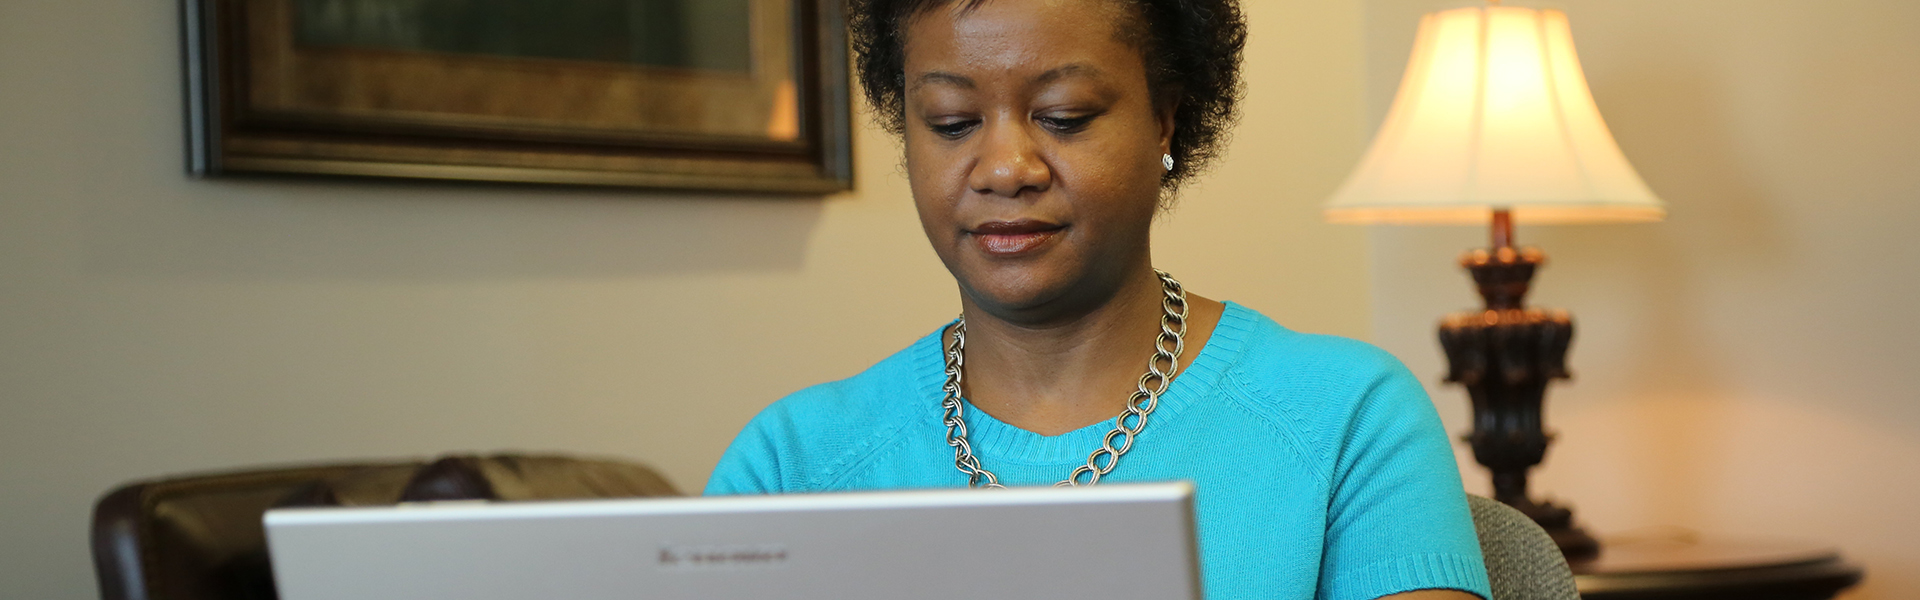 Cropped Photo of Woman Taking Class Online